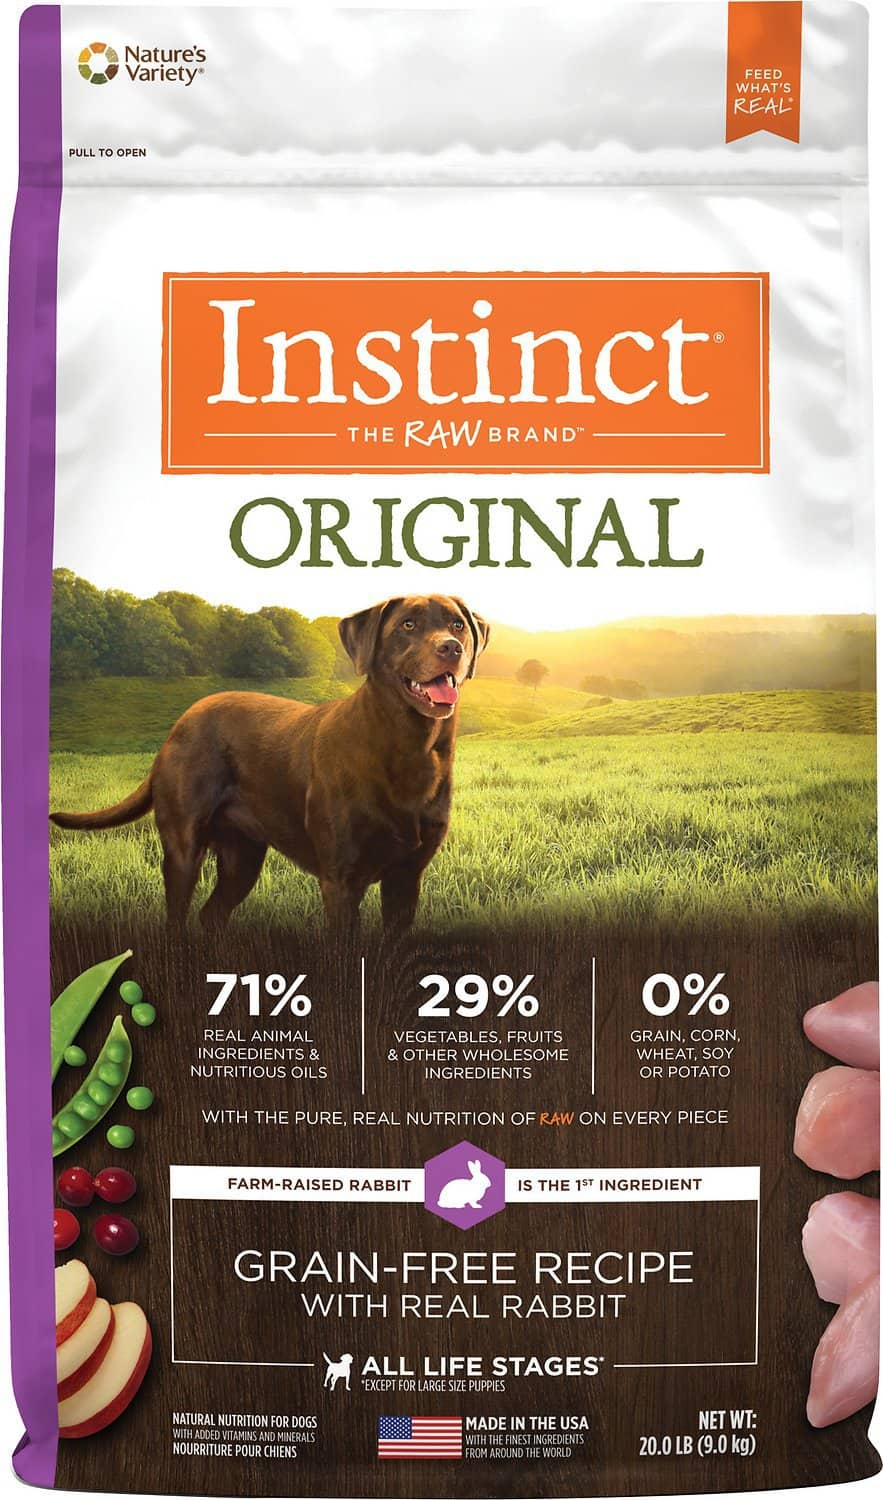 Nature's Variety Dog Food: 2021 Review, Recalls & Coupons 17